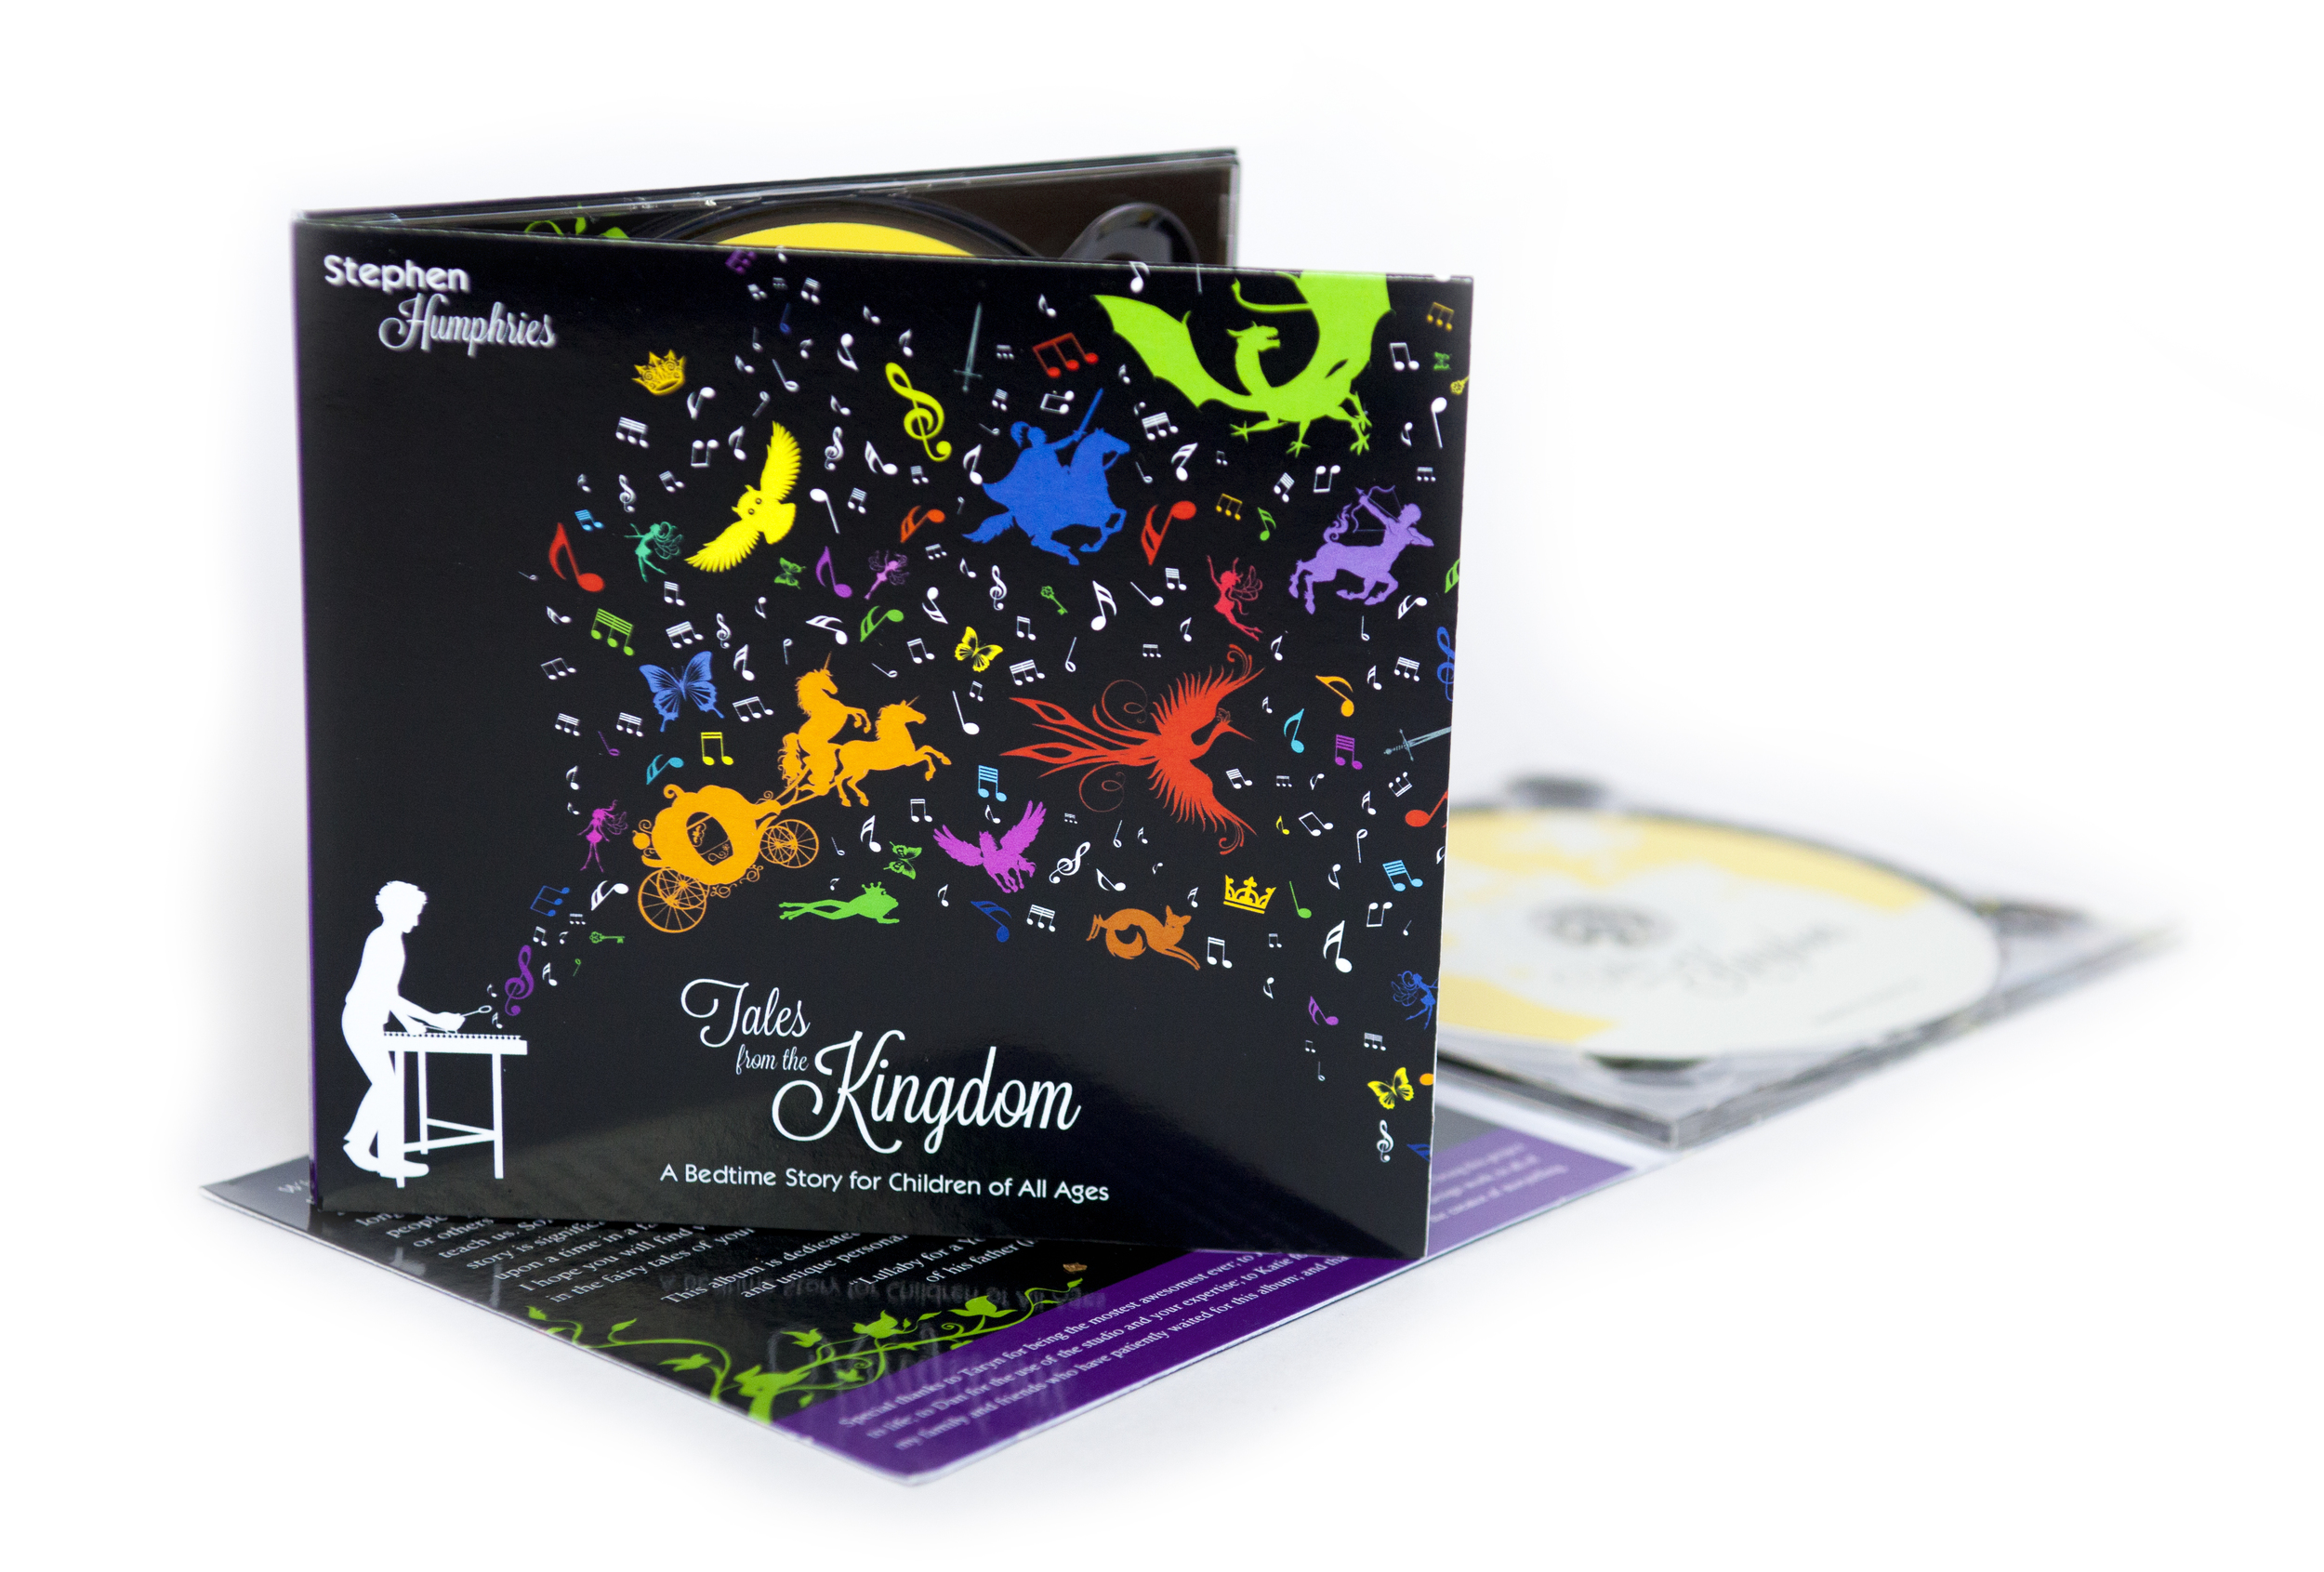 This storybook themed cover was designed for a concept album recorded by Stephen Humphries